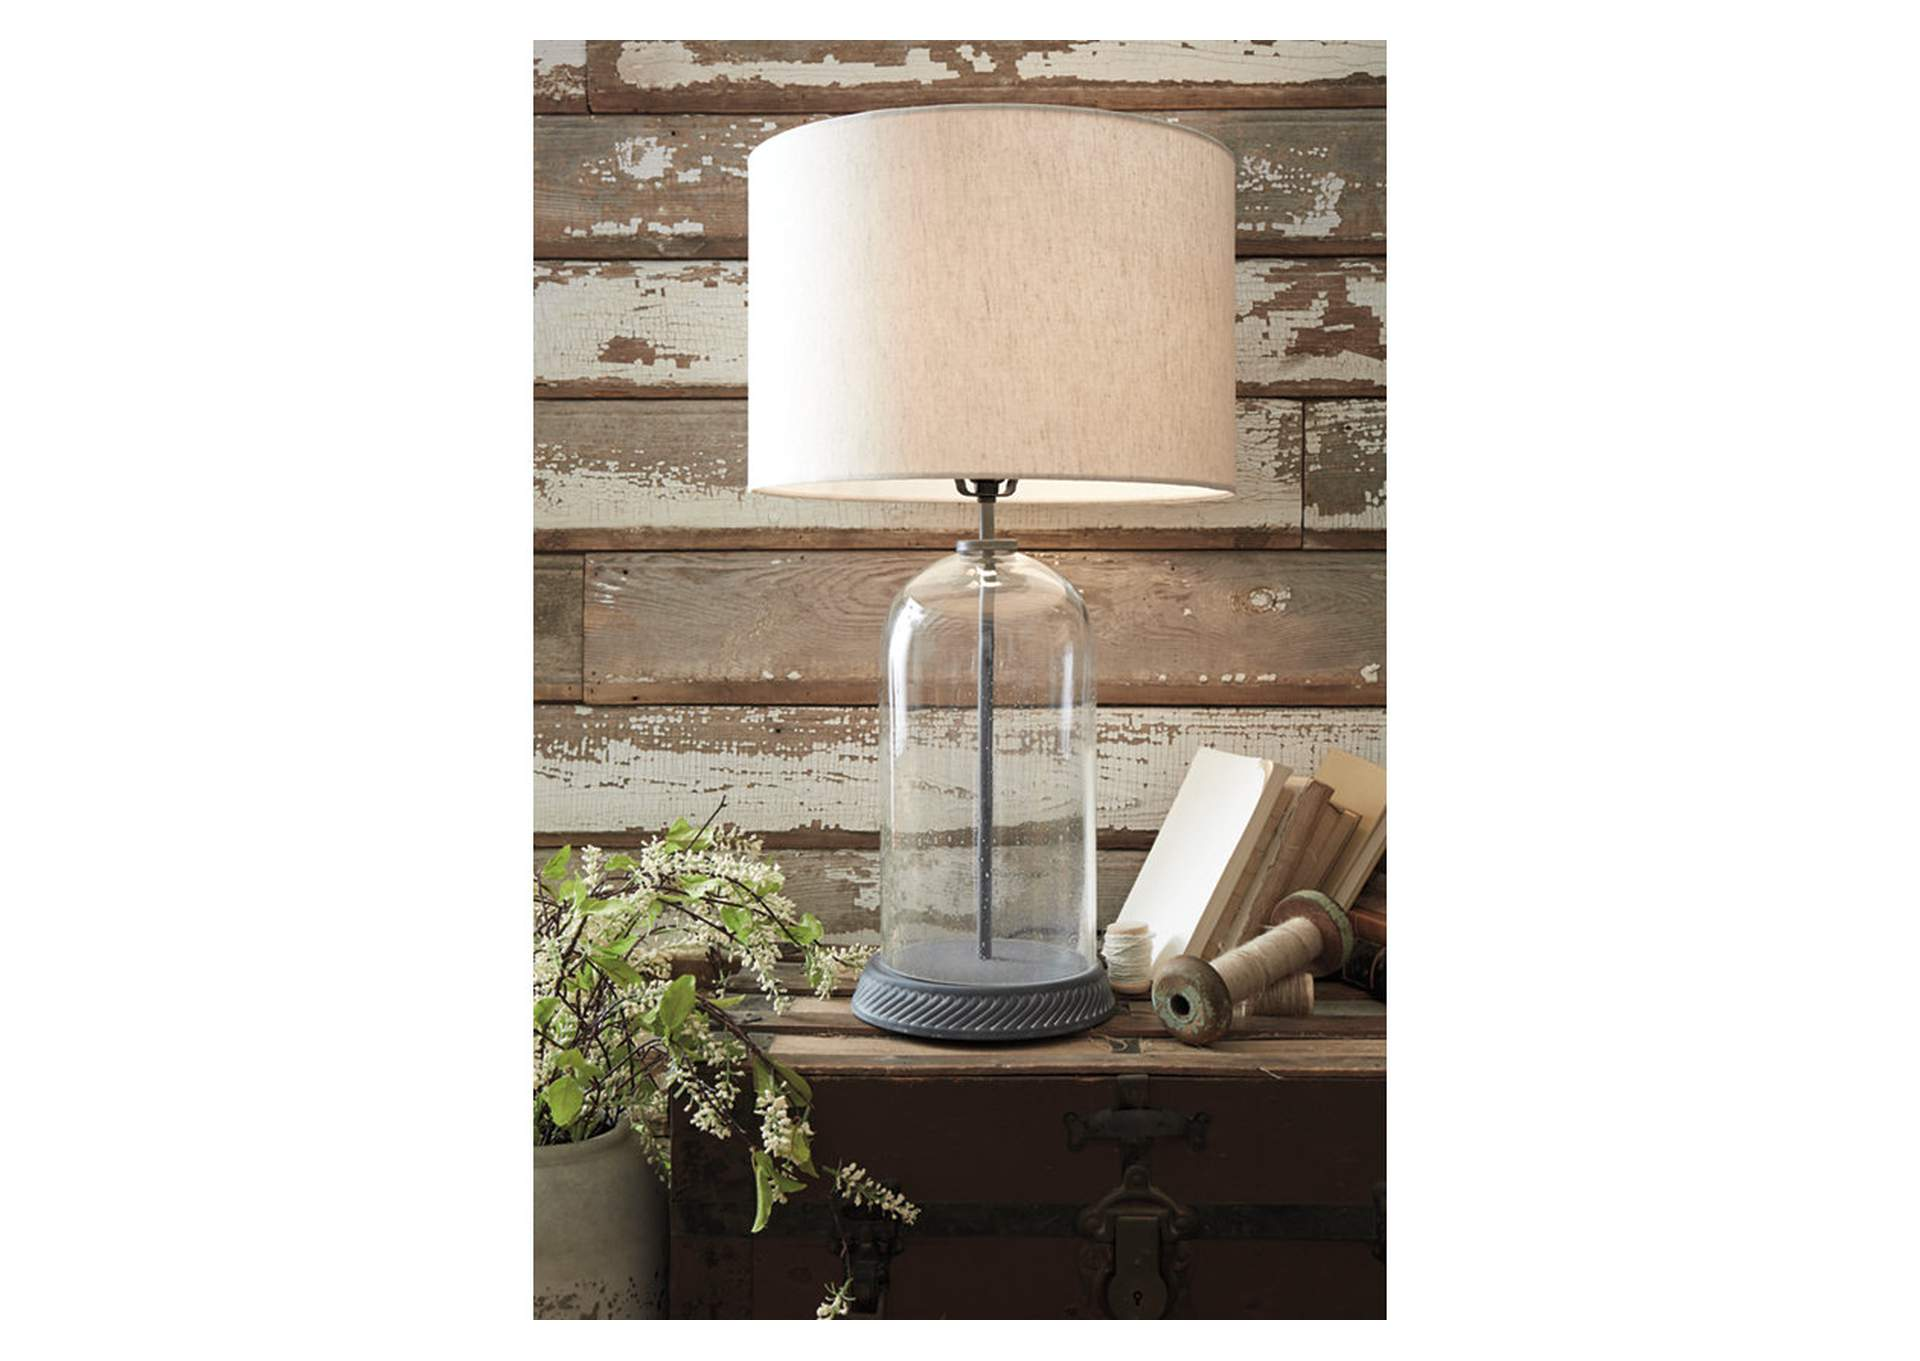 Manelin Gray Glass Table Lamp,Signature Design By Ashley